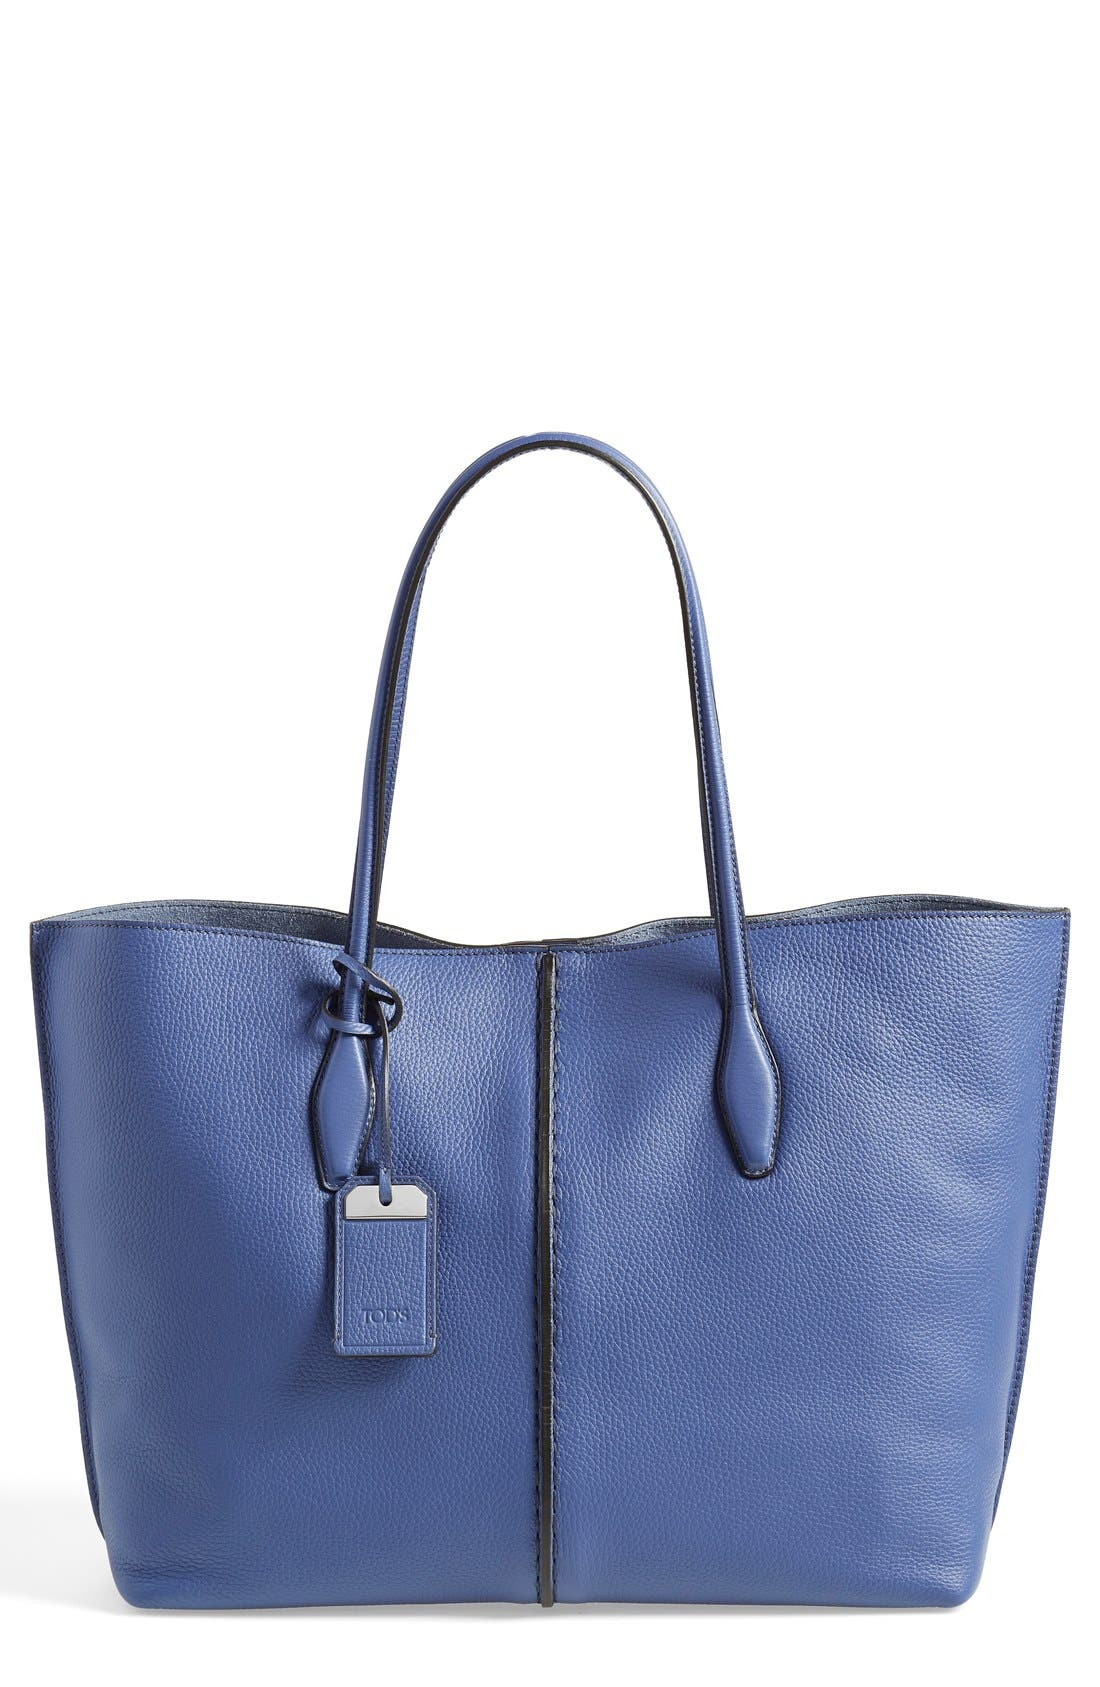 'Large Joy' Leather Tote,                             Main thumbnail 1, color,                             400